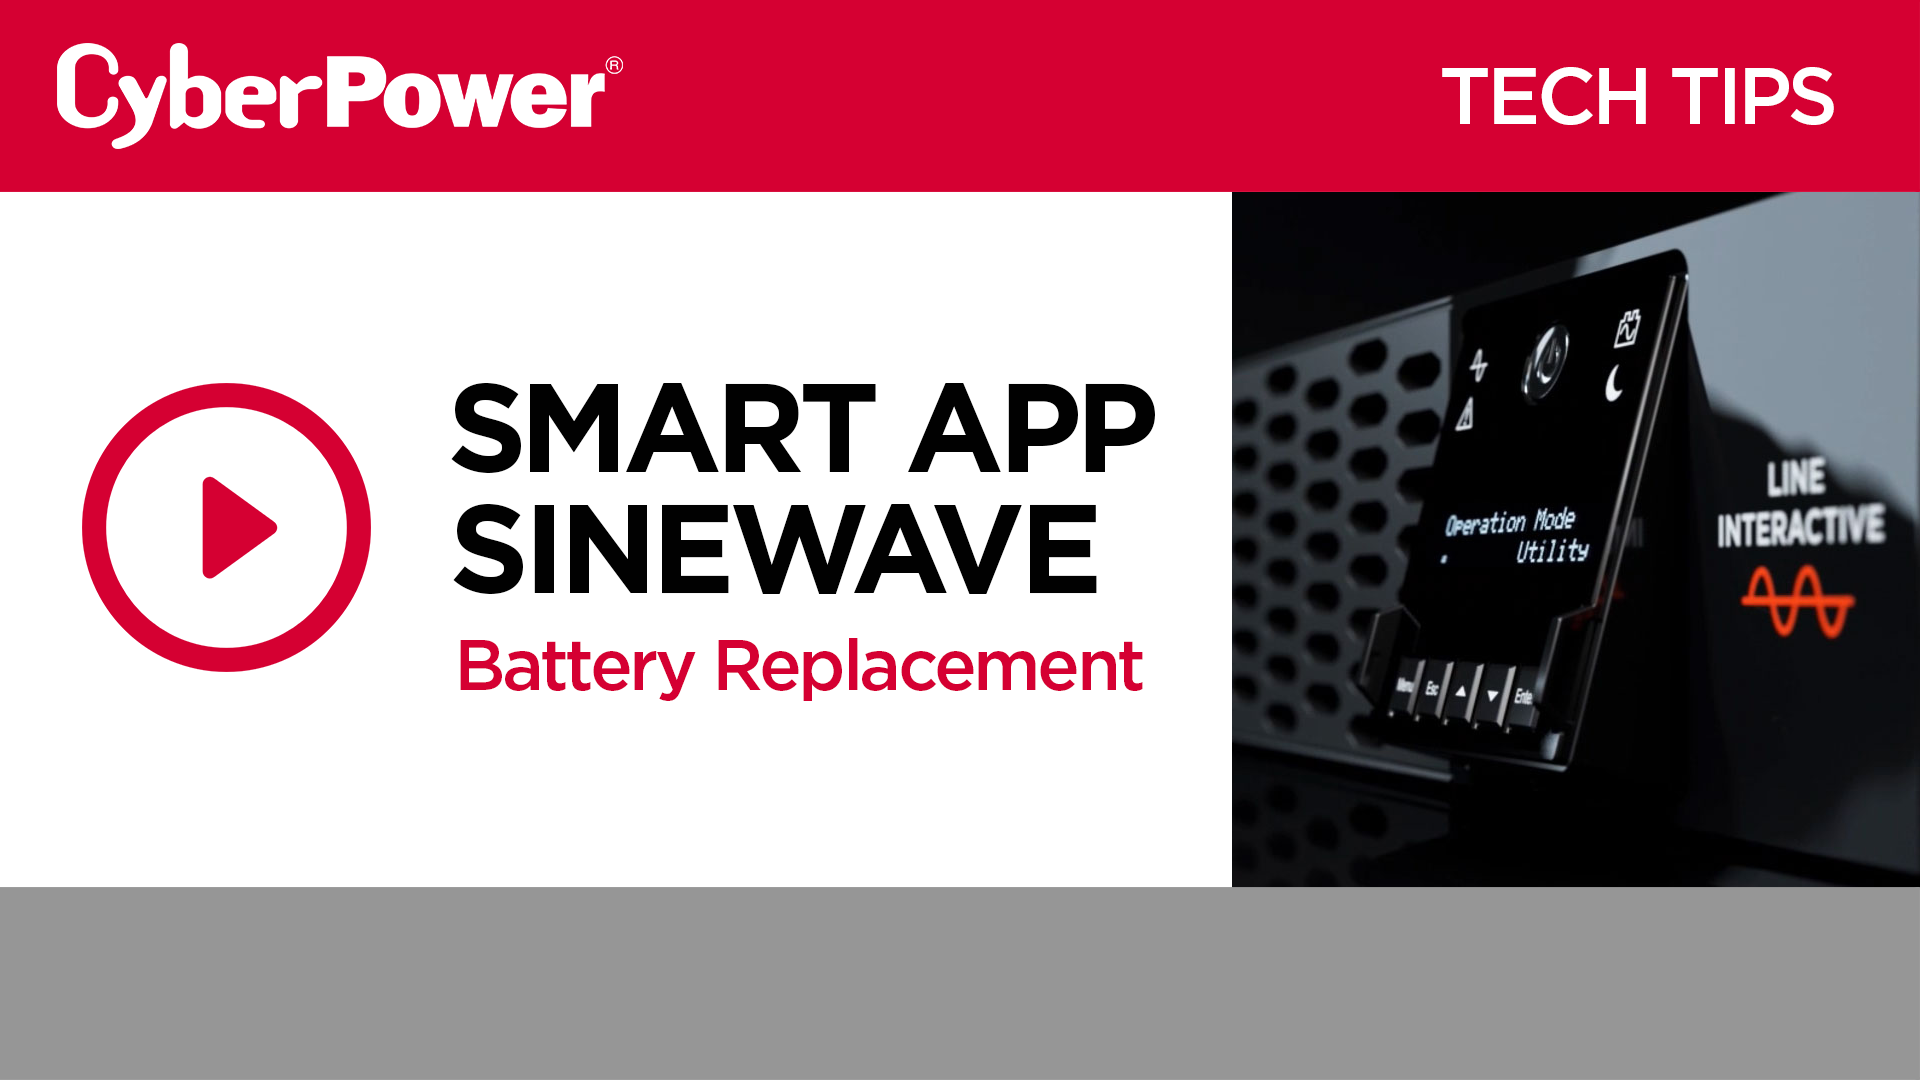 New Smart App Sinewave Battery Replacement